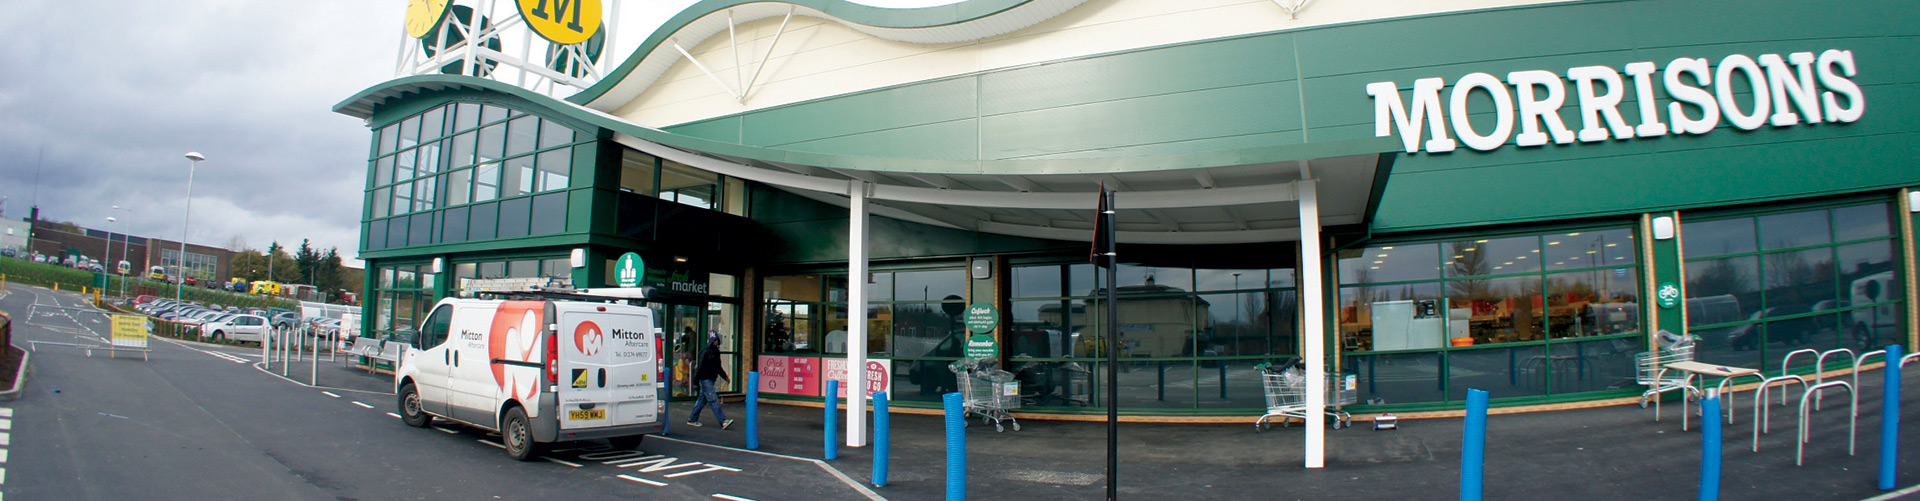 Morrisons Store Facade